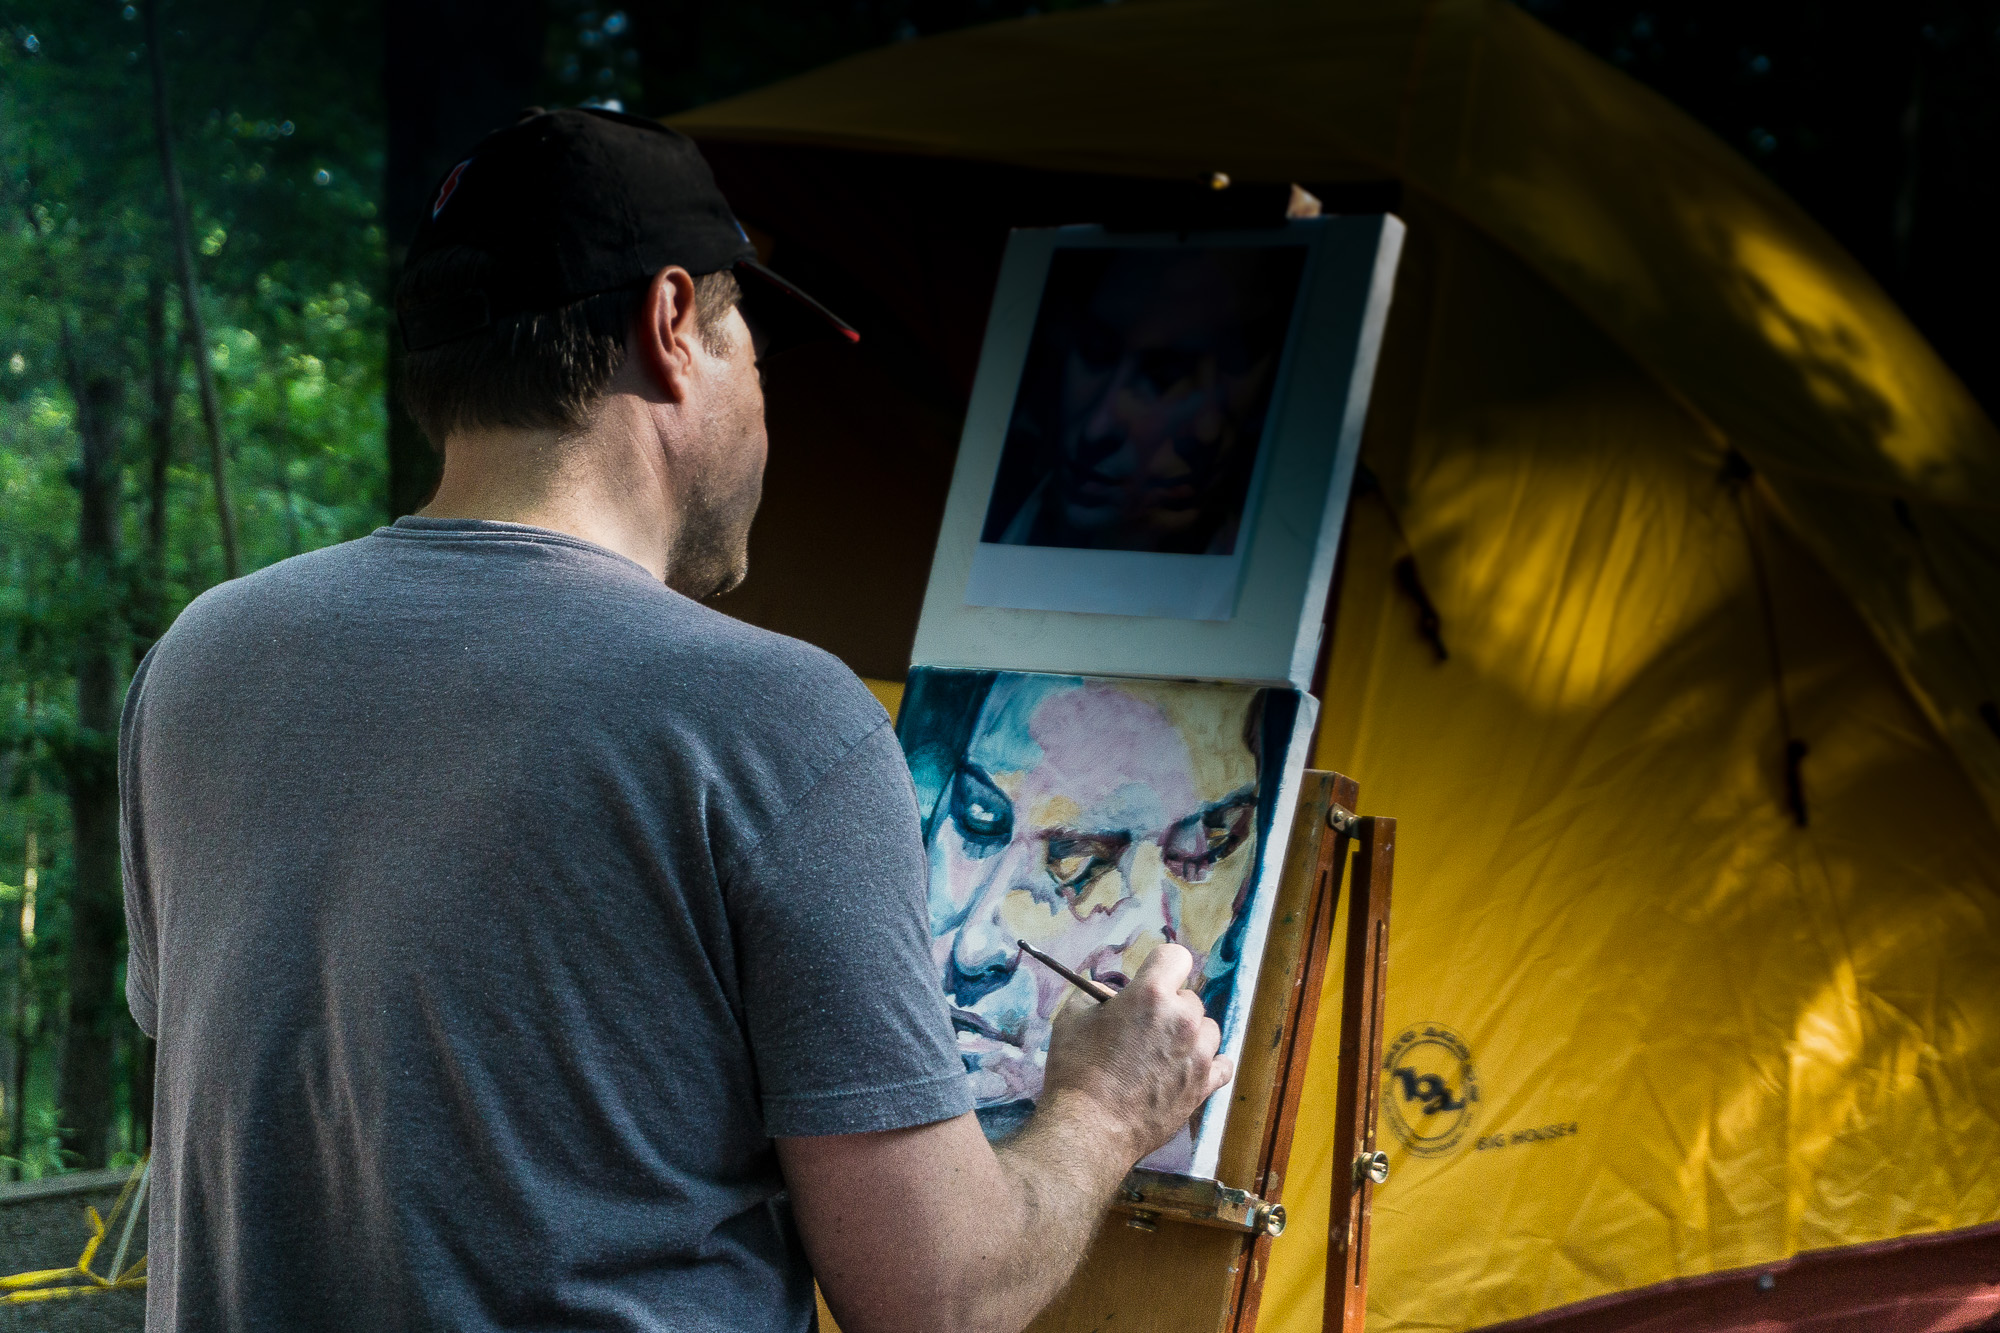 Scott Hutchison combining camping with painting the great outdoors